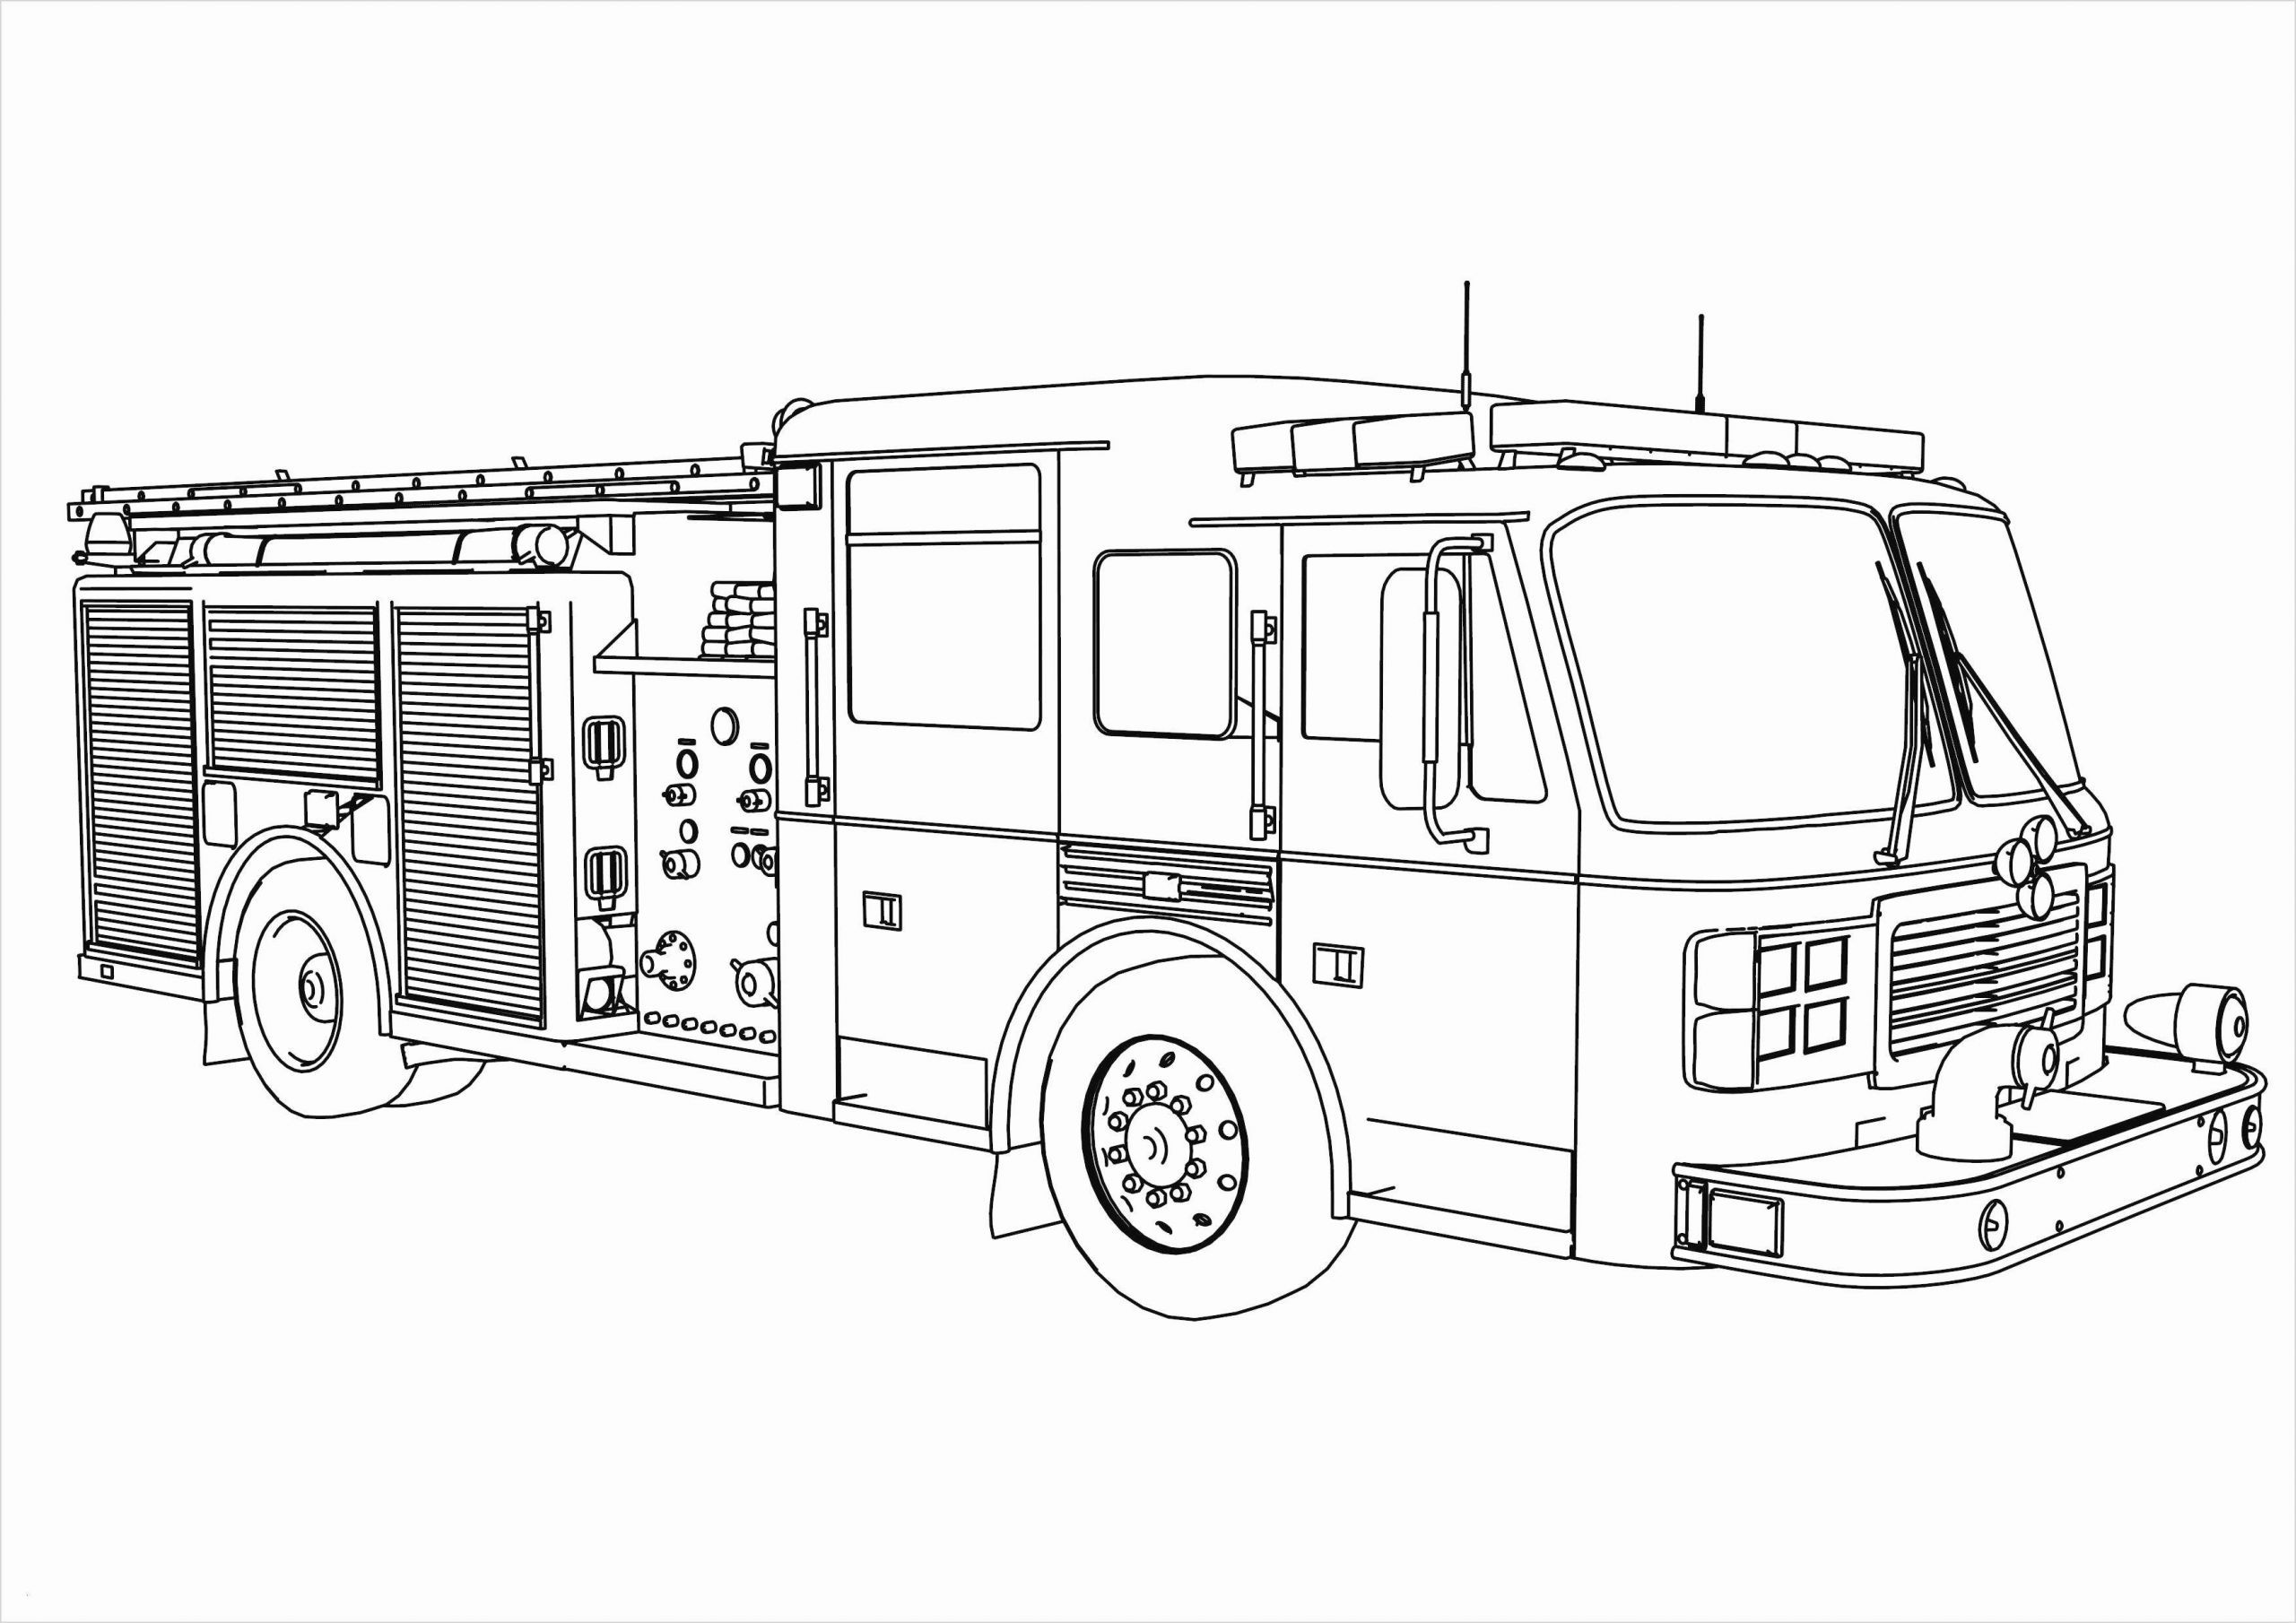 Fire Truck Coloring Page Best Of 25 Pretty Photo Of Semi Truck Coloring Pages Truck Firetruck Coloring Page Truck Coloring Pages Monster Truck Coloring Pages